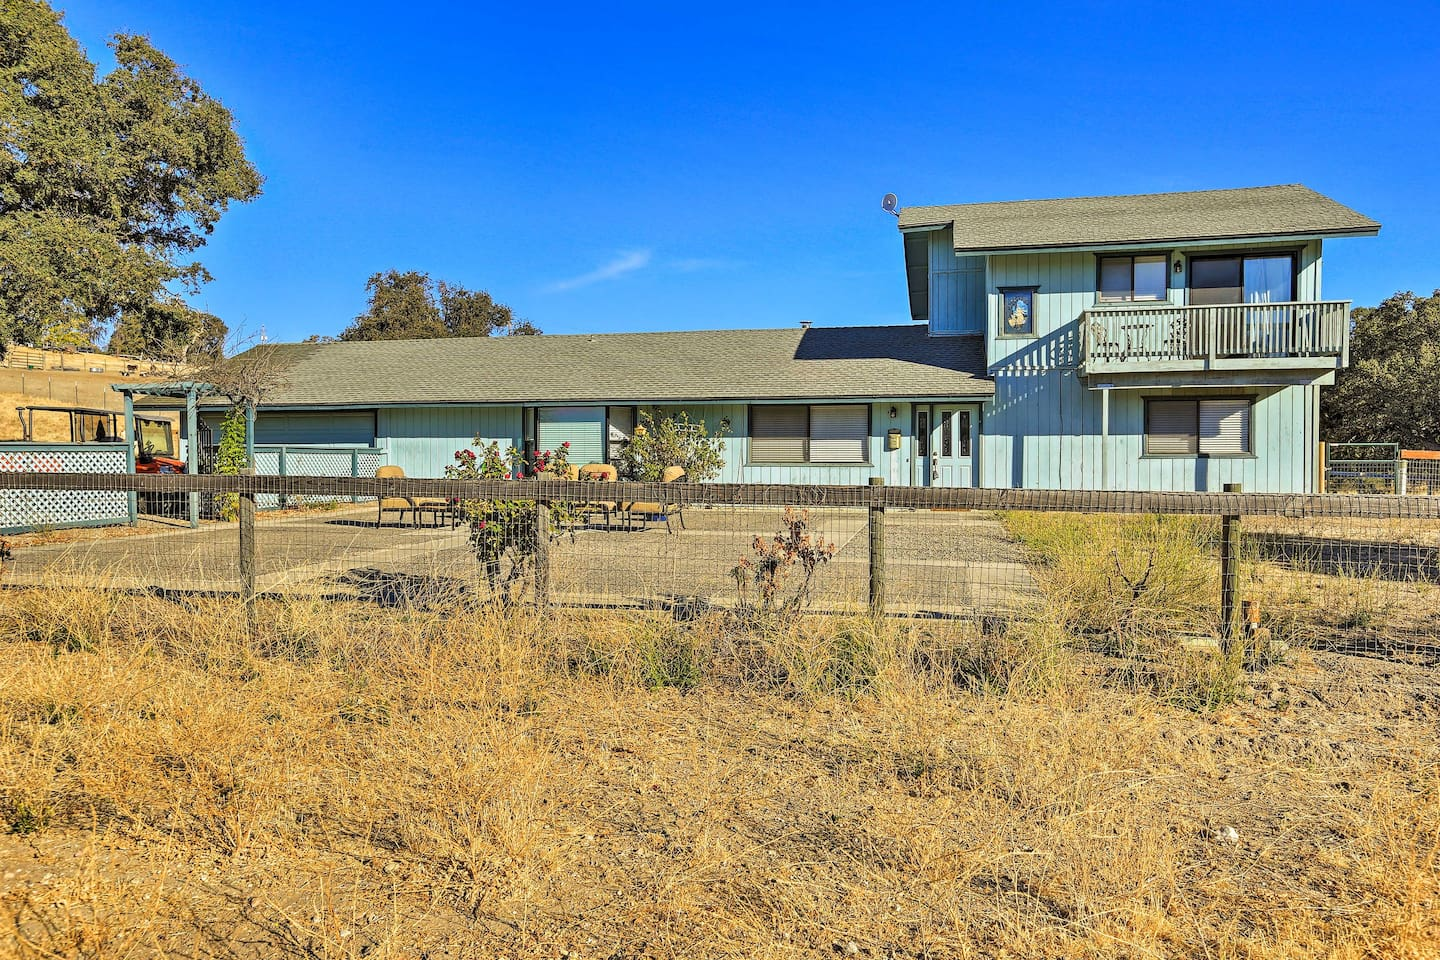 A California wine country paradise awaits 8 guests at this vacation rental home!